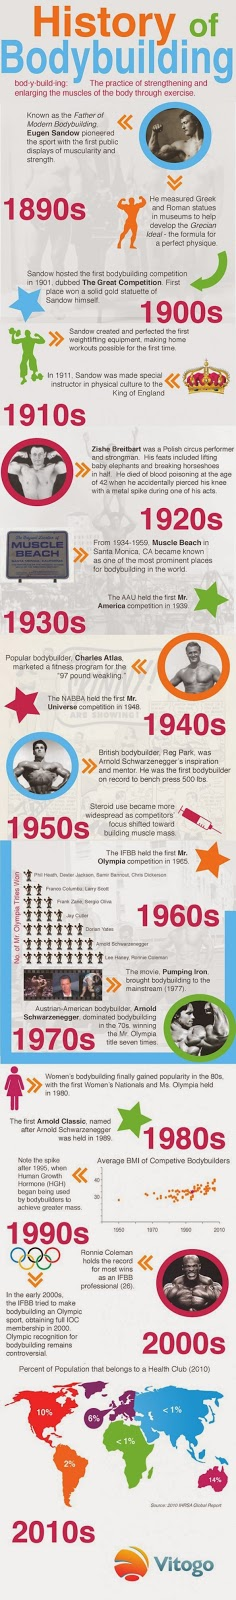 http://visual.ly/history-bodybuilding-0